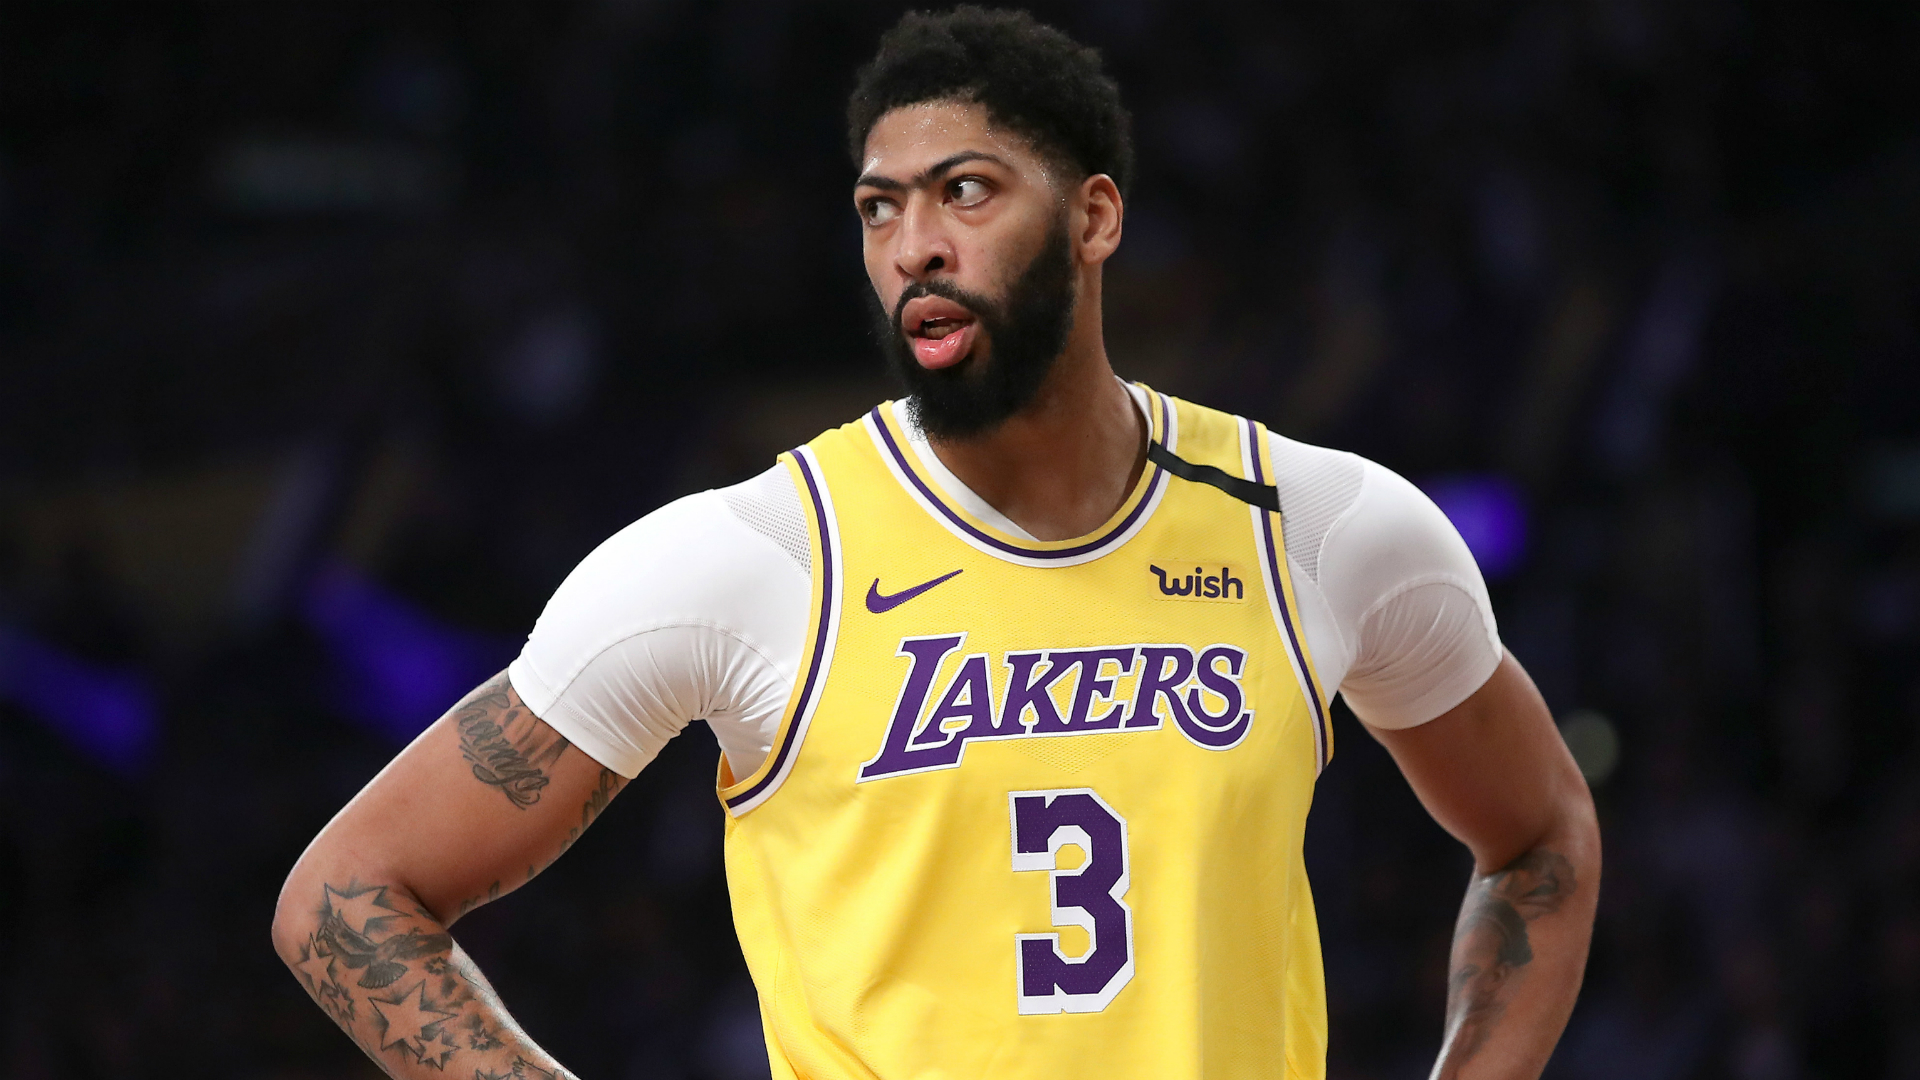 Lakers' Anthony Davis to wear own name on jersey   Sporting News